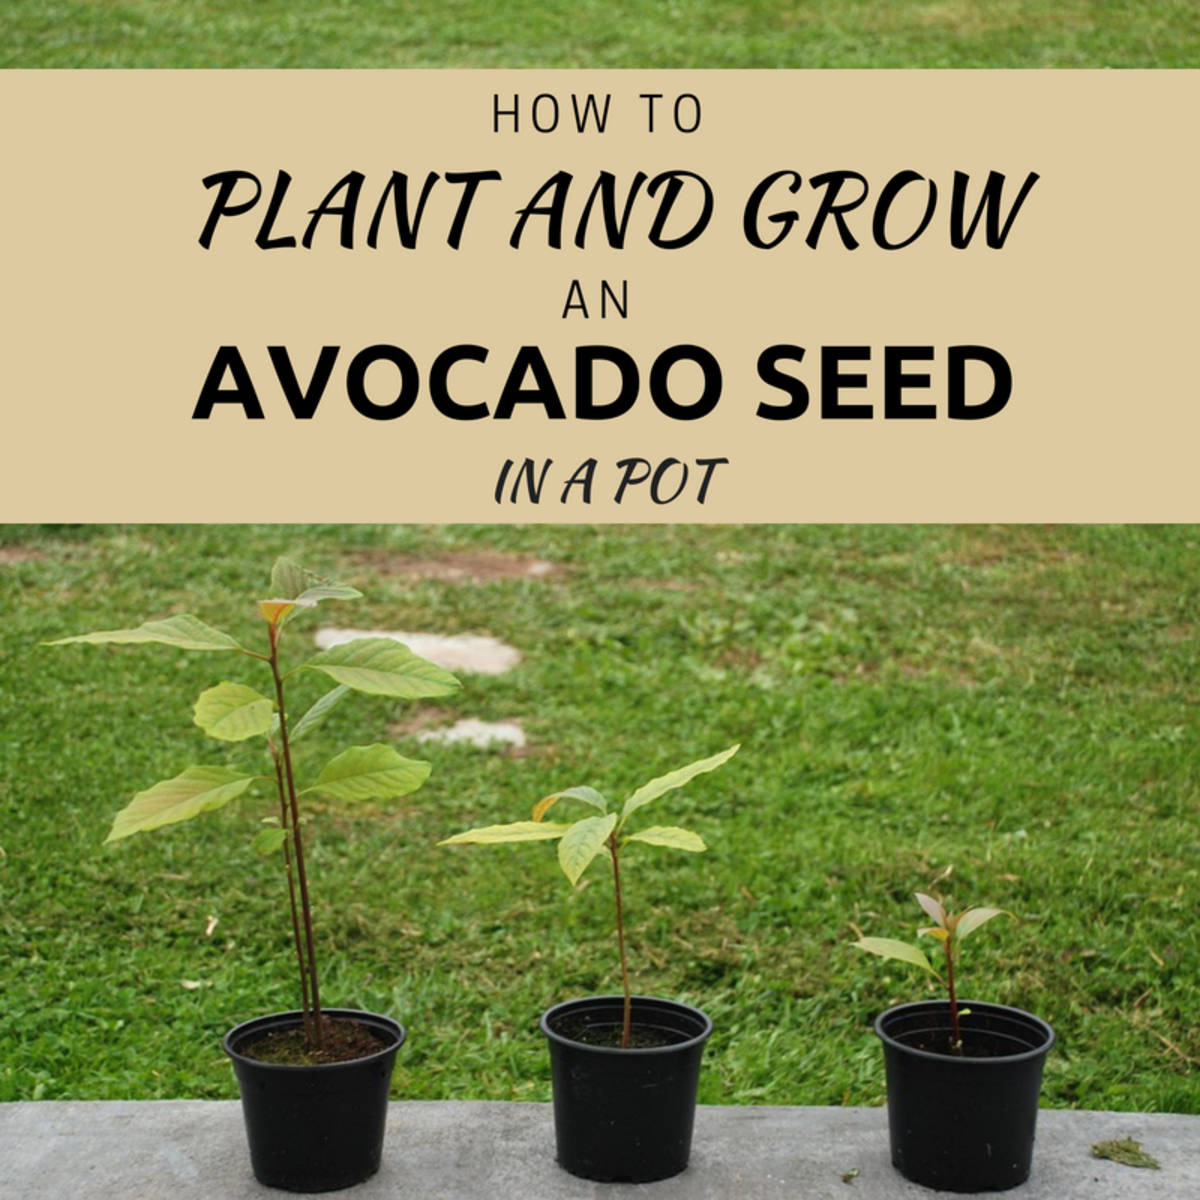 Avocado plants grown from seed in a pot can make great indoor plants.